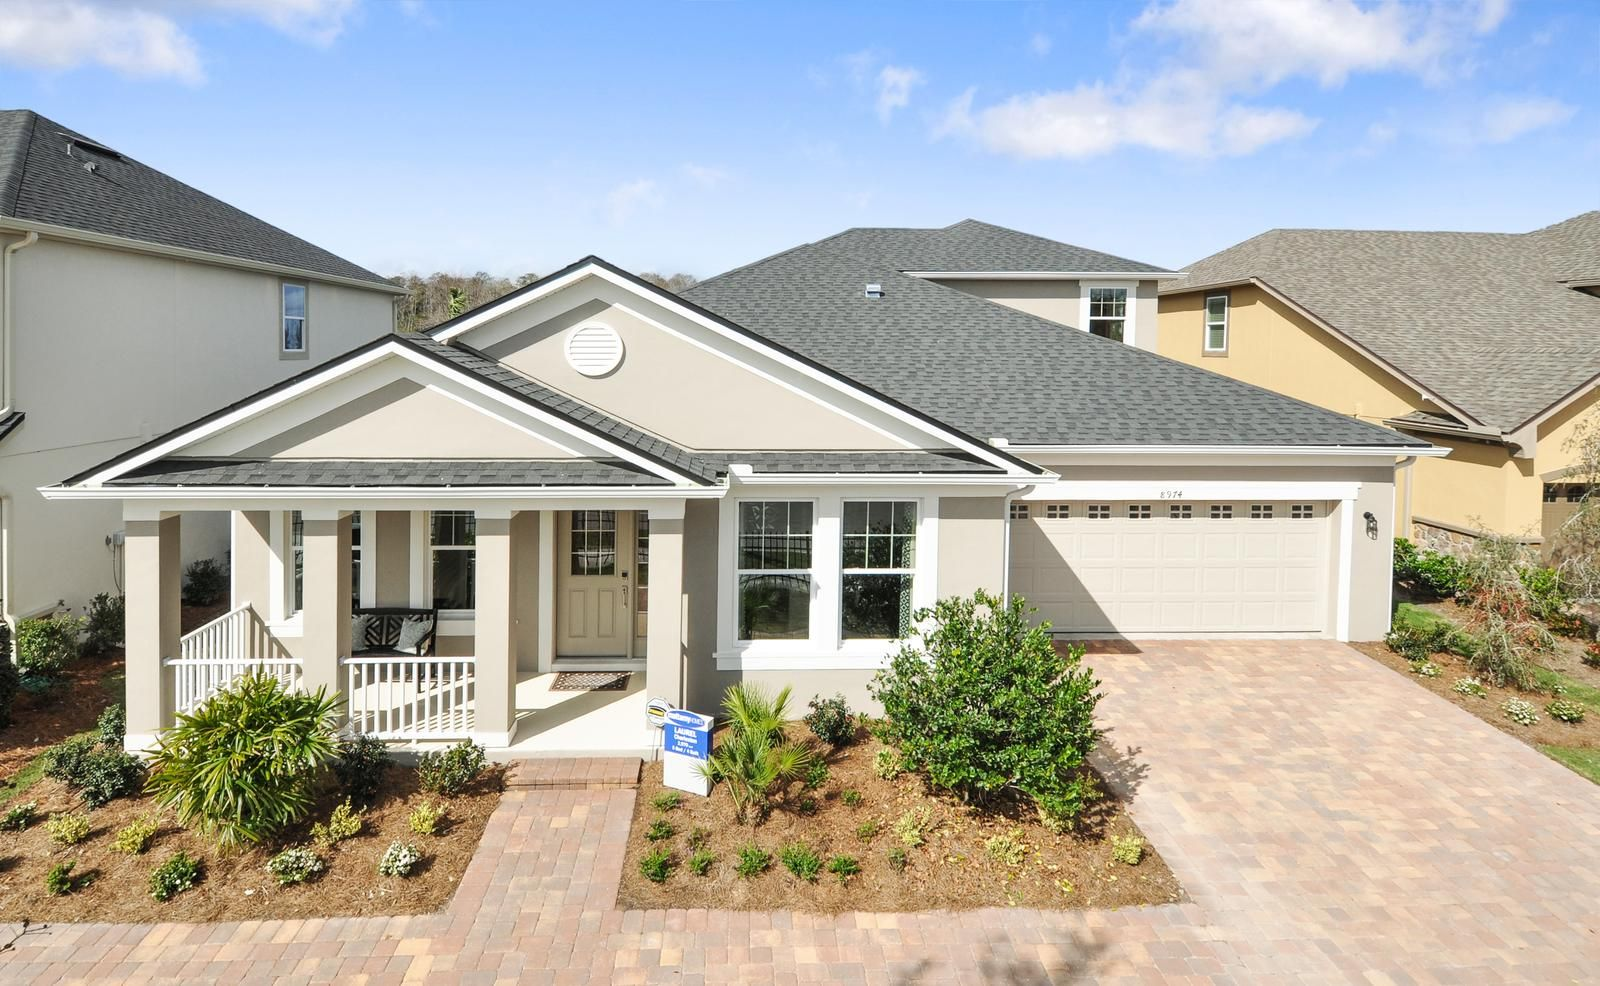 Model homes in orlando florida